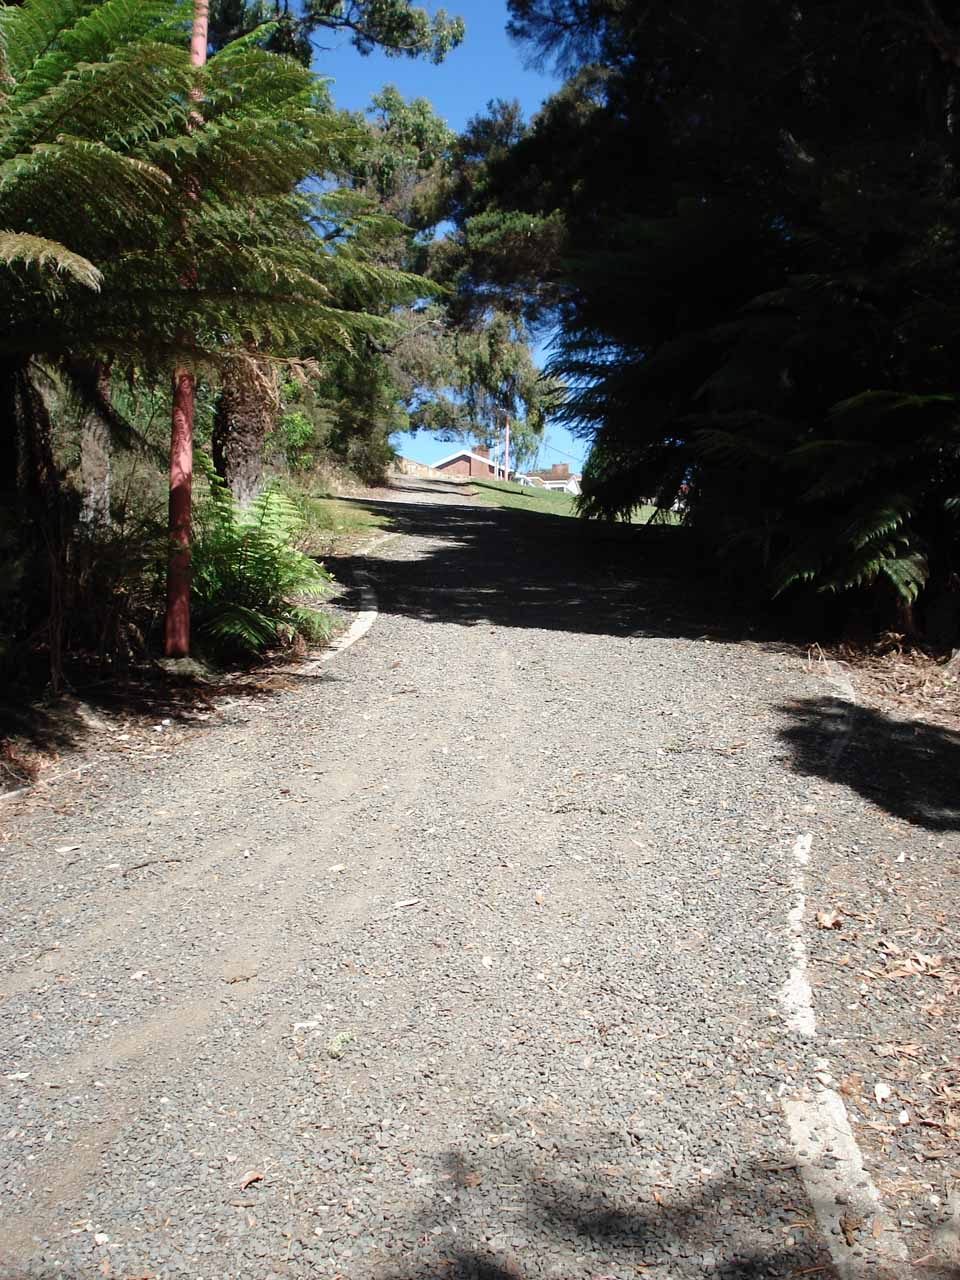 This gravel path was an alternate entrance to Burnie Park from the residences above.  Clearly, there were many ways besides our route to reach Oldaker Falls